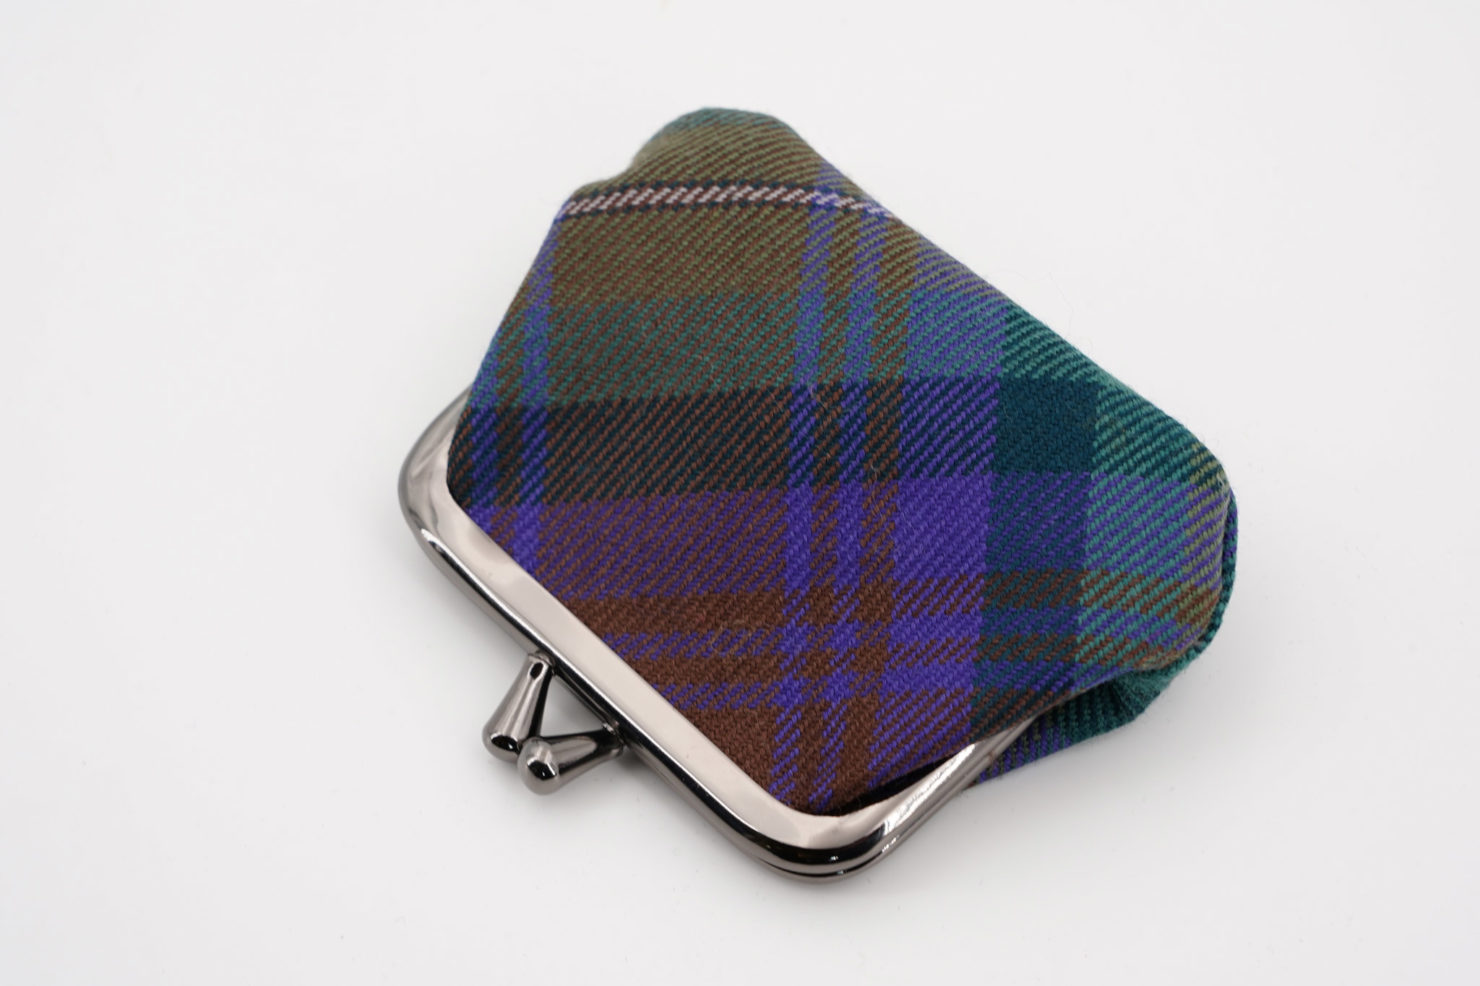 COIN PURSE SCOTLAND FOREVER - LOCHARRON OF SCOTLAND